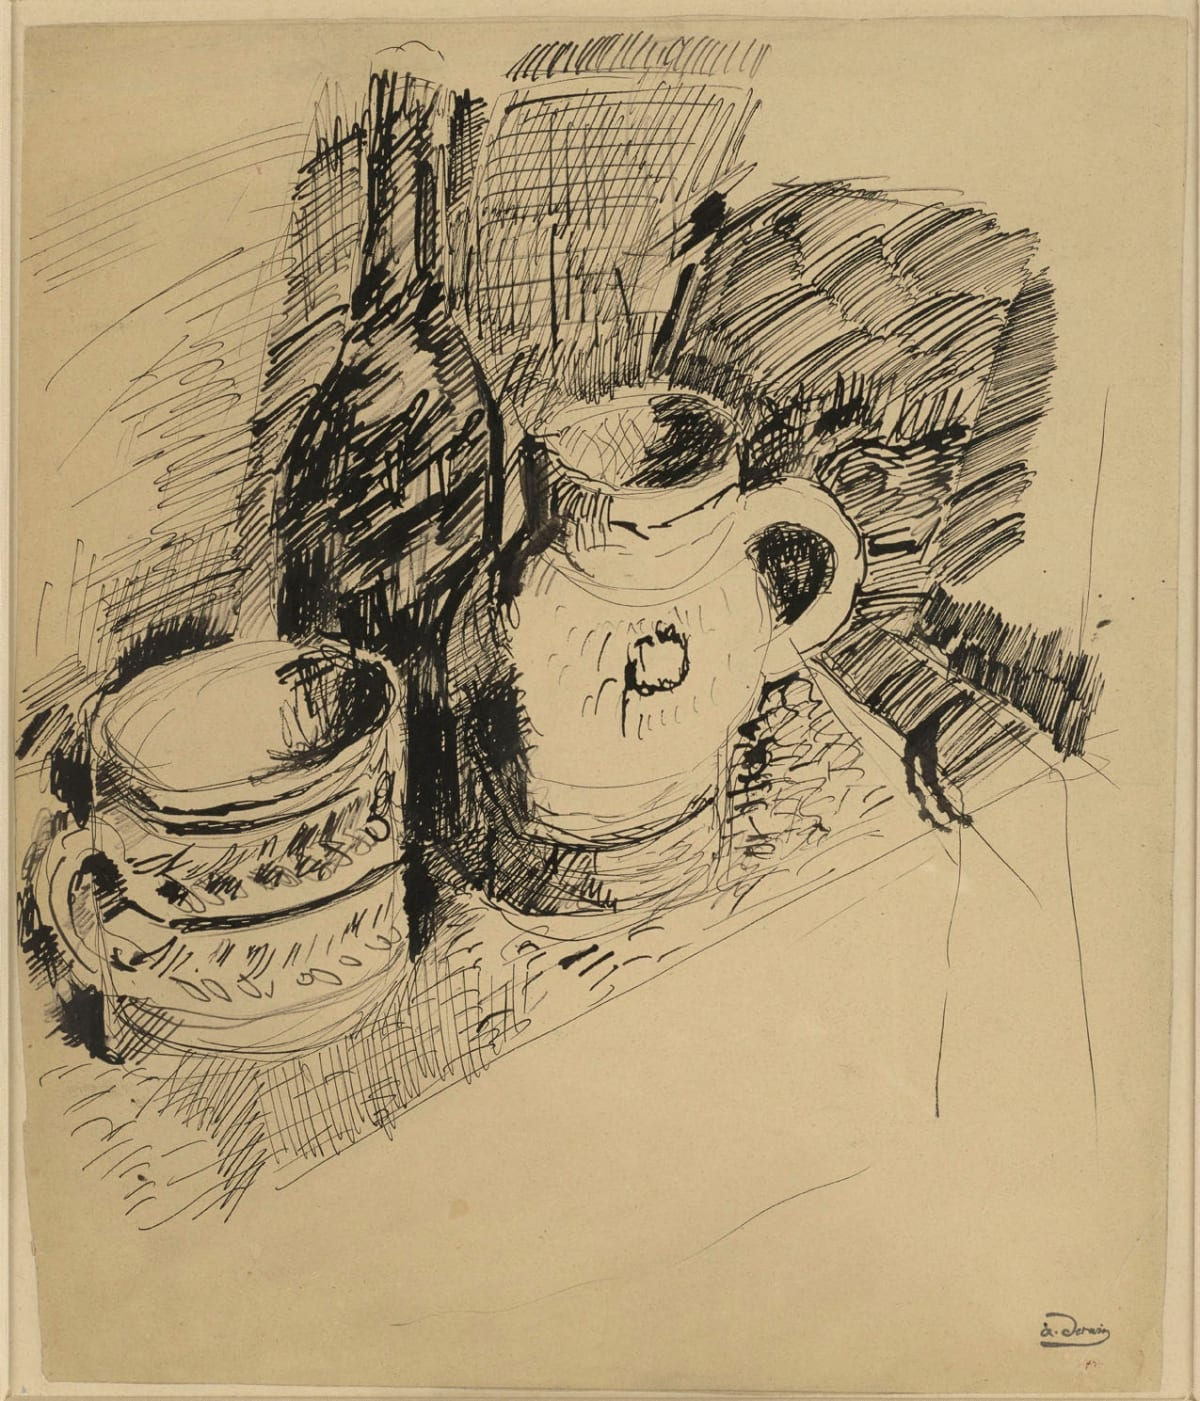 André Derain, Nature morte, c. 1904